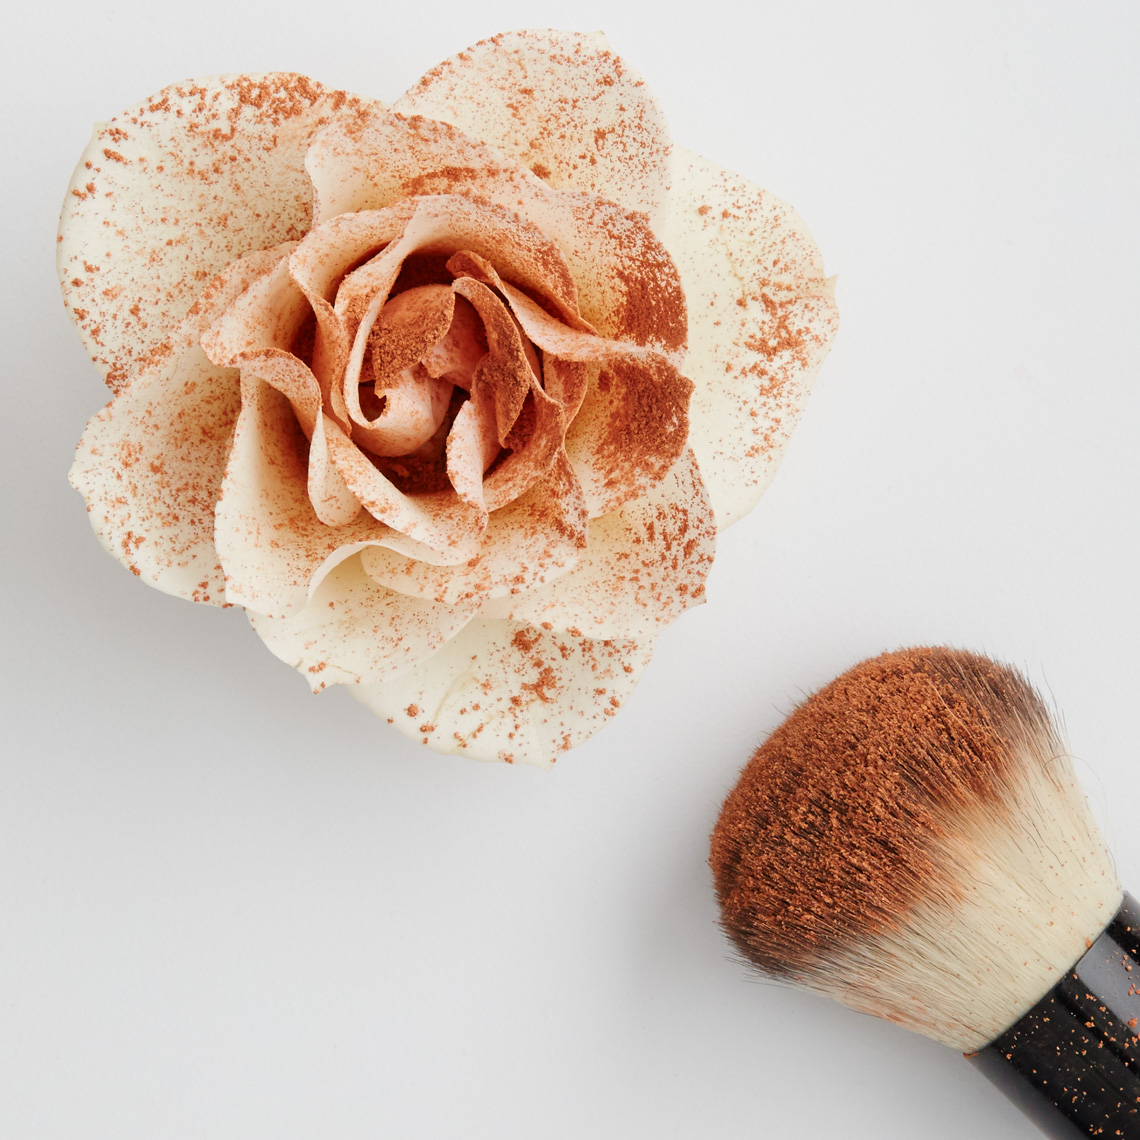 blush brush with powder sprinkled on white rose